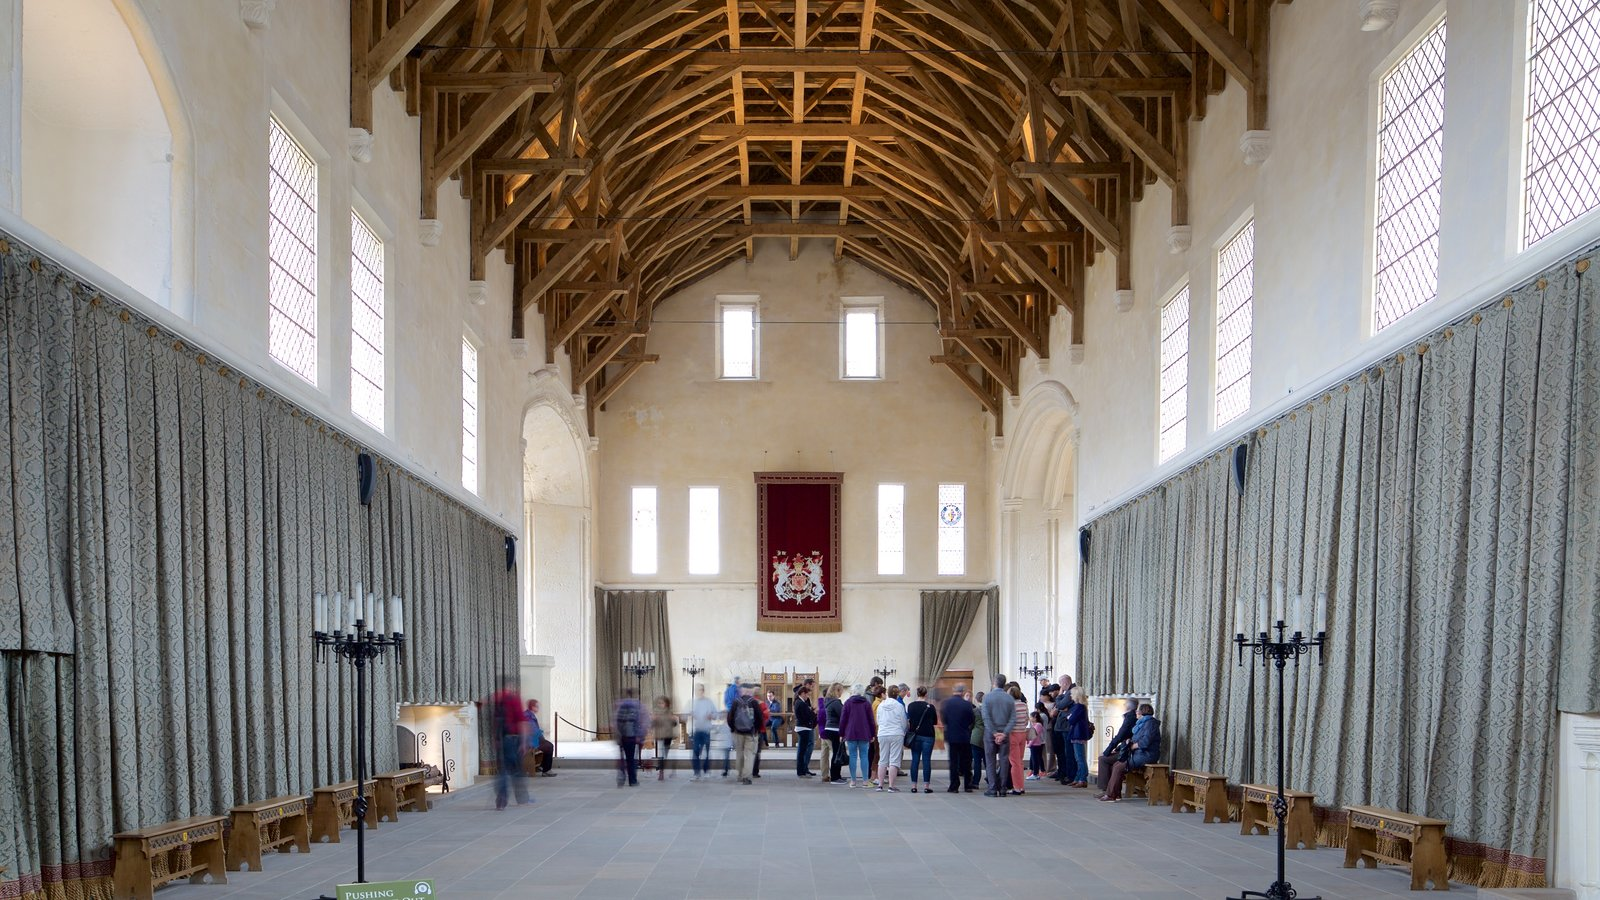 Stirling Castle featuring heritage elements and interior views